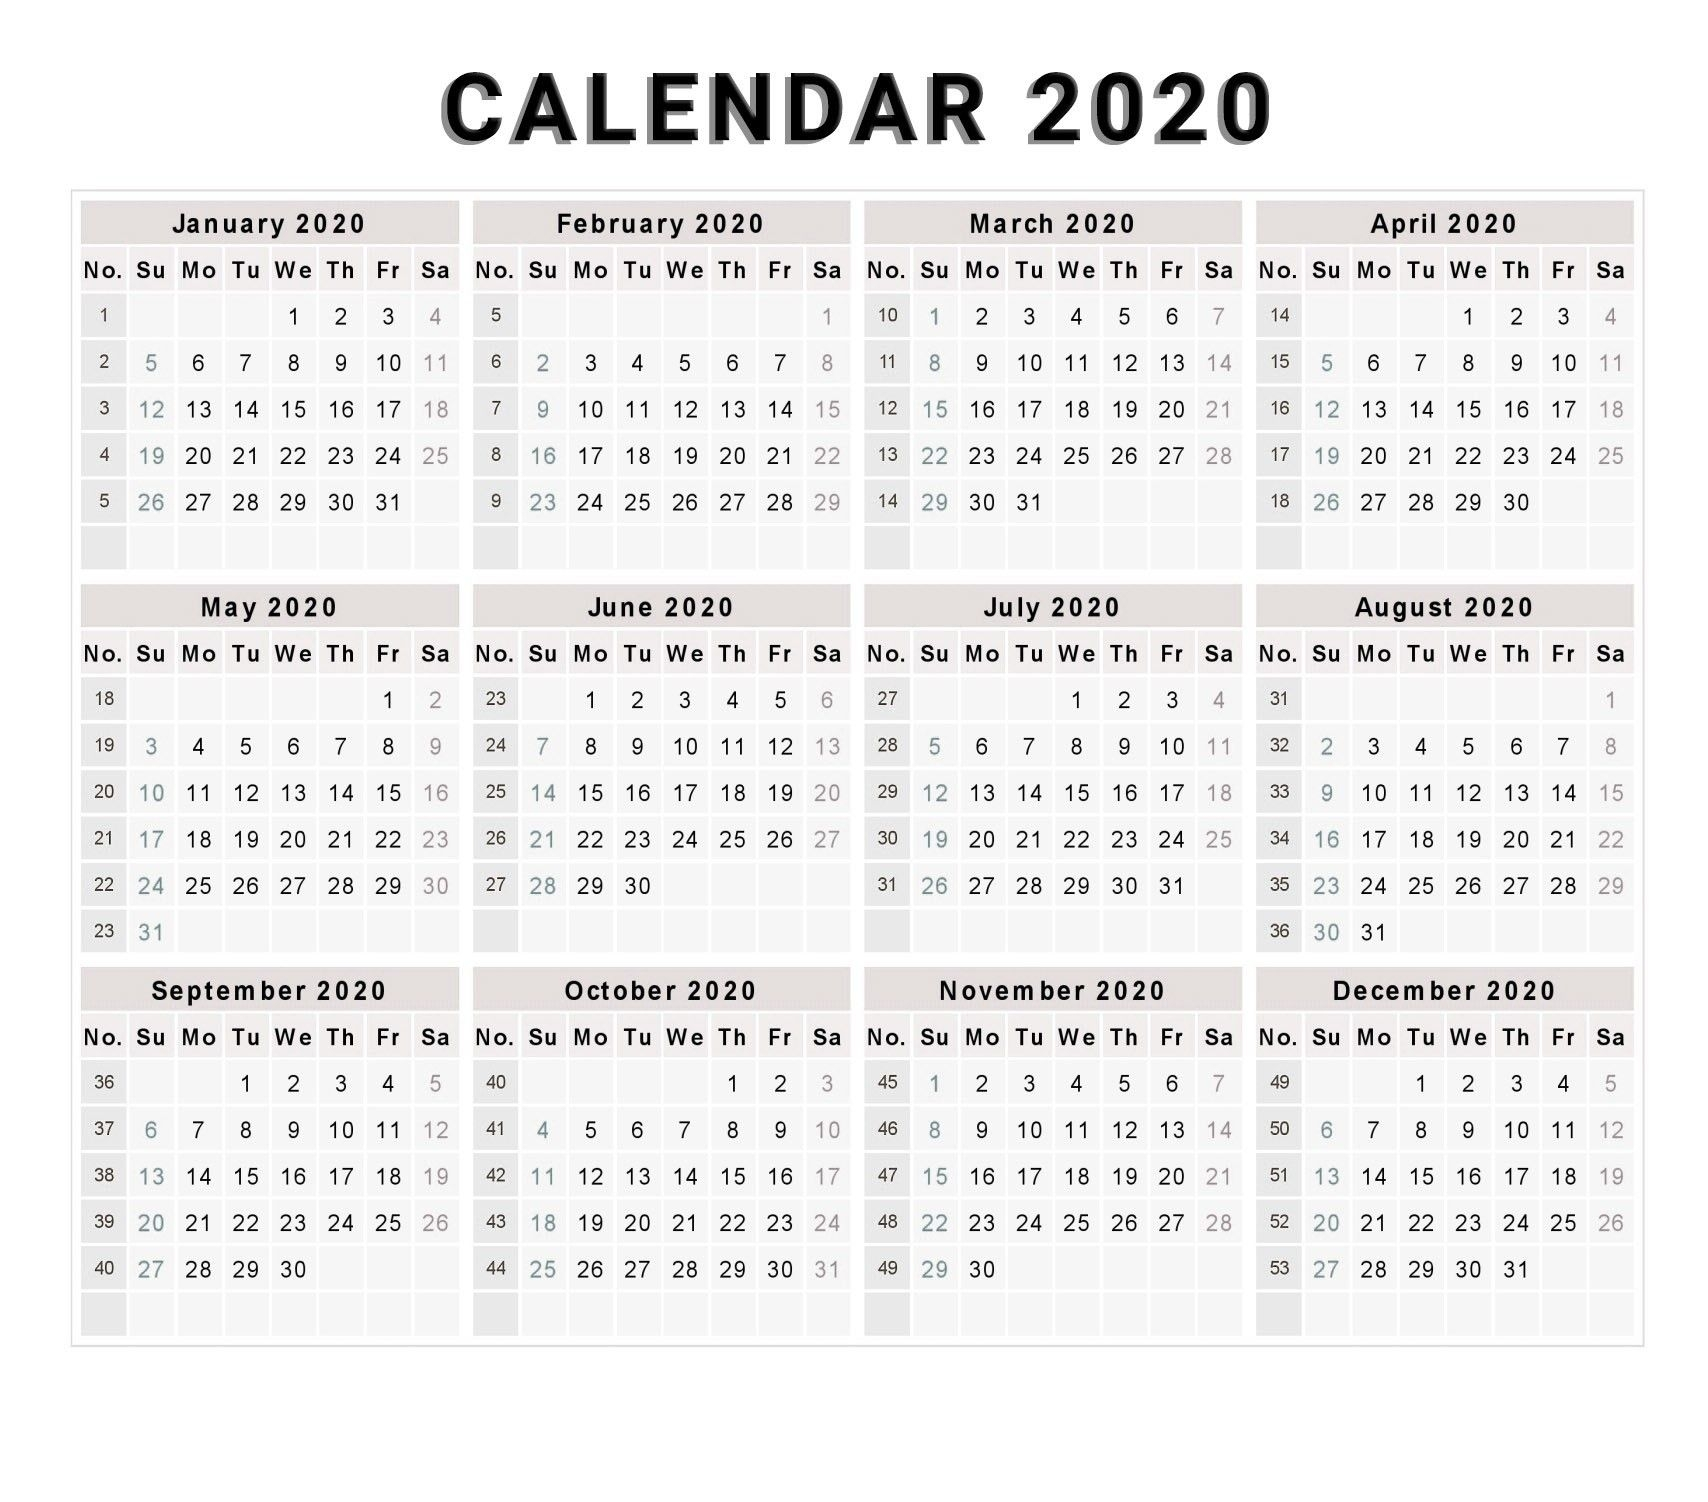 Calendar 2020 Free Printable Calendar 2020 Free 2020 pertaining to 8.5 X 11 Printable 2020 Calendar At A Glance